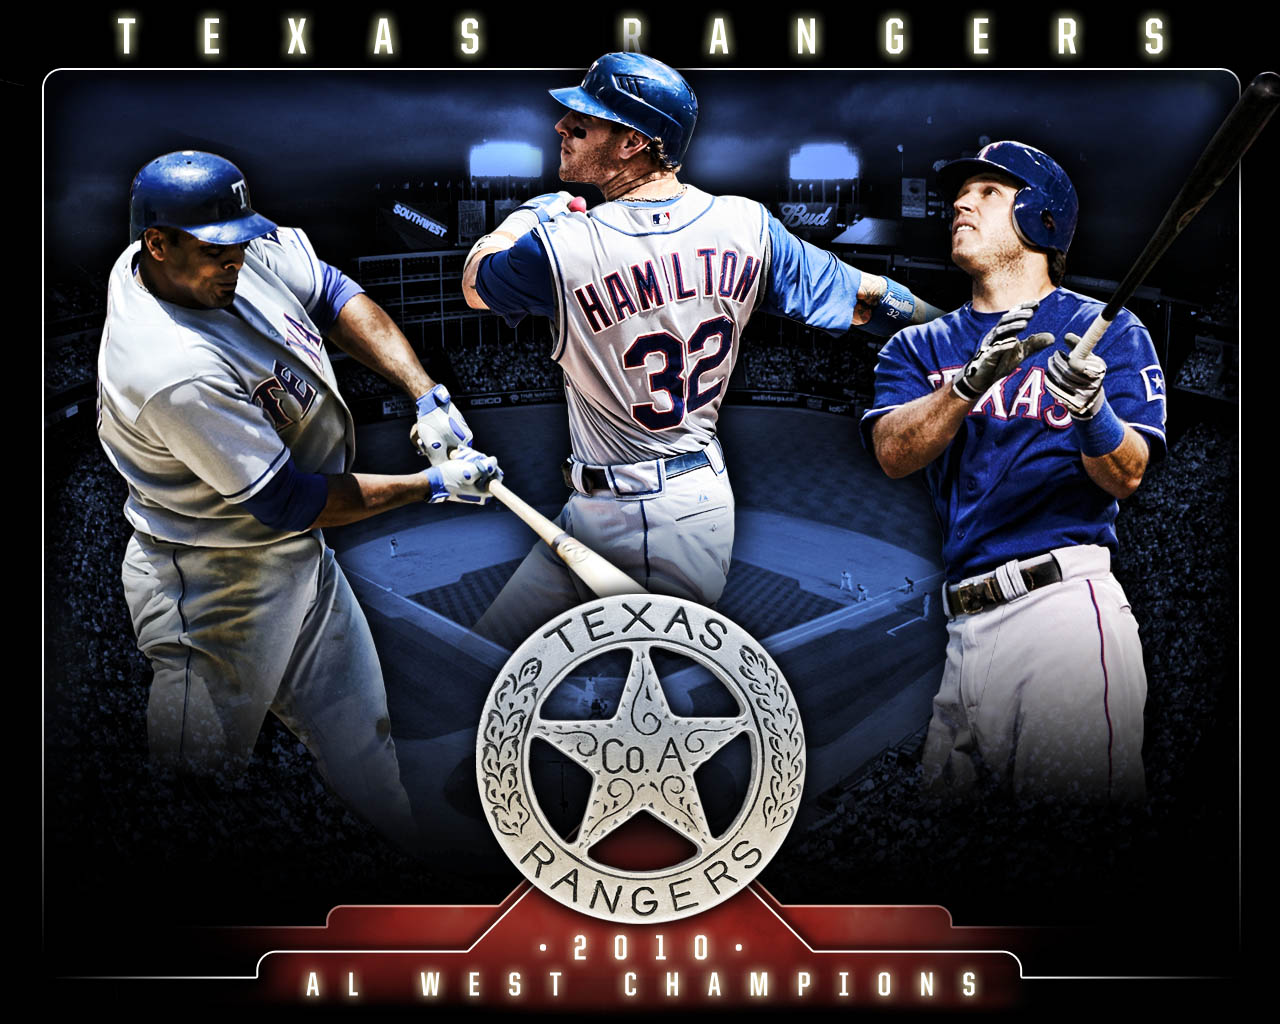 about Texas Rangers or even videos related to Texas Rangers 1280x1024